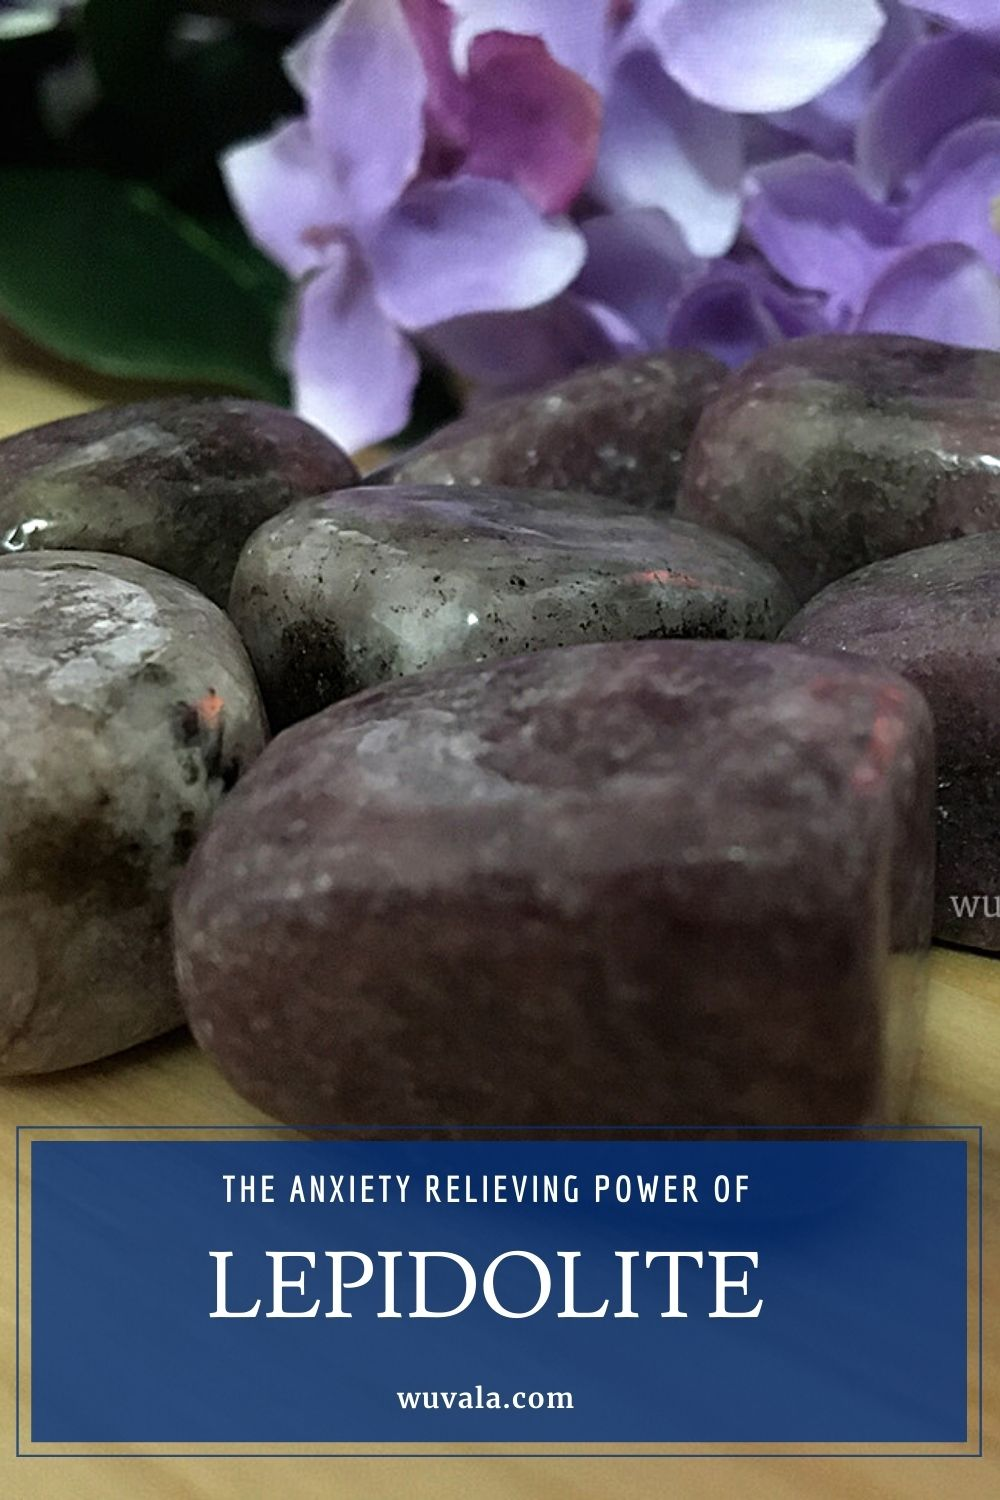 The Anxiety Relieving Power of Lepidolite